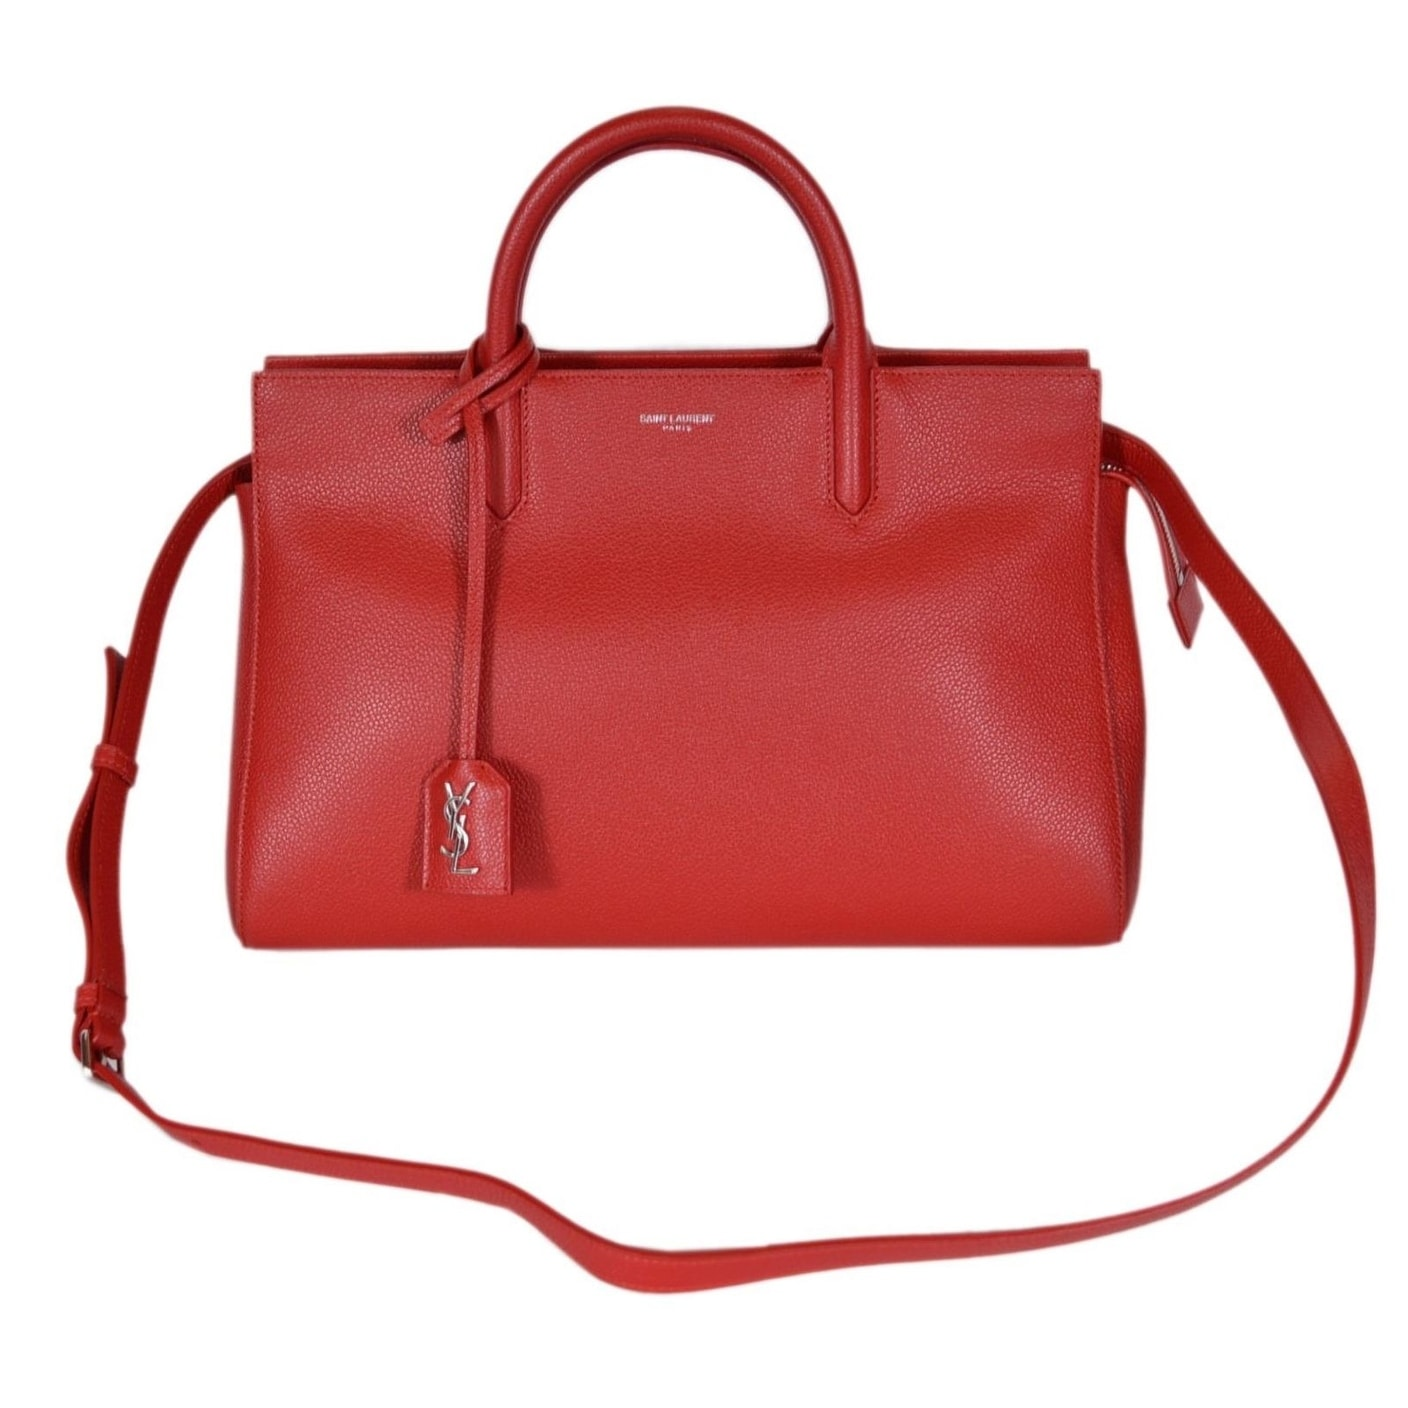 5c7179d114 Saint Laurent YSL 400413 Small Red Leather Cabas Rive Gauche Purse Handbag